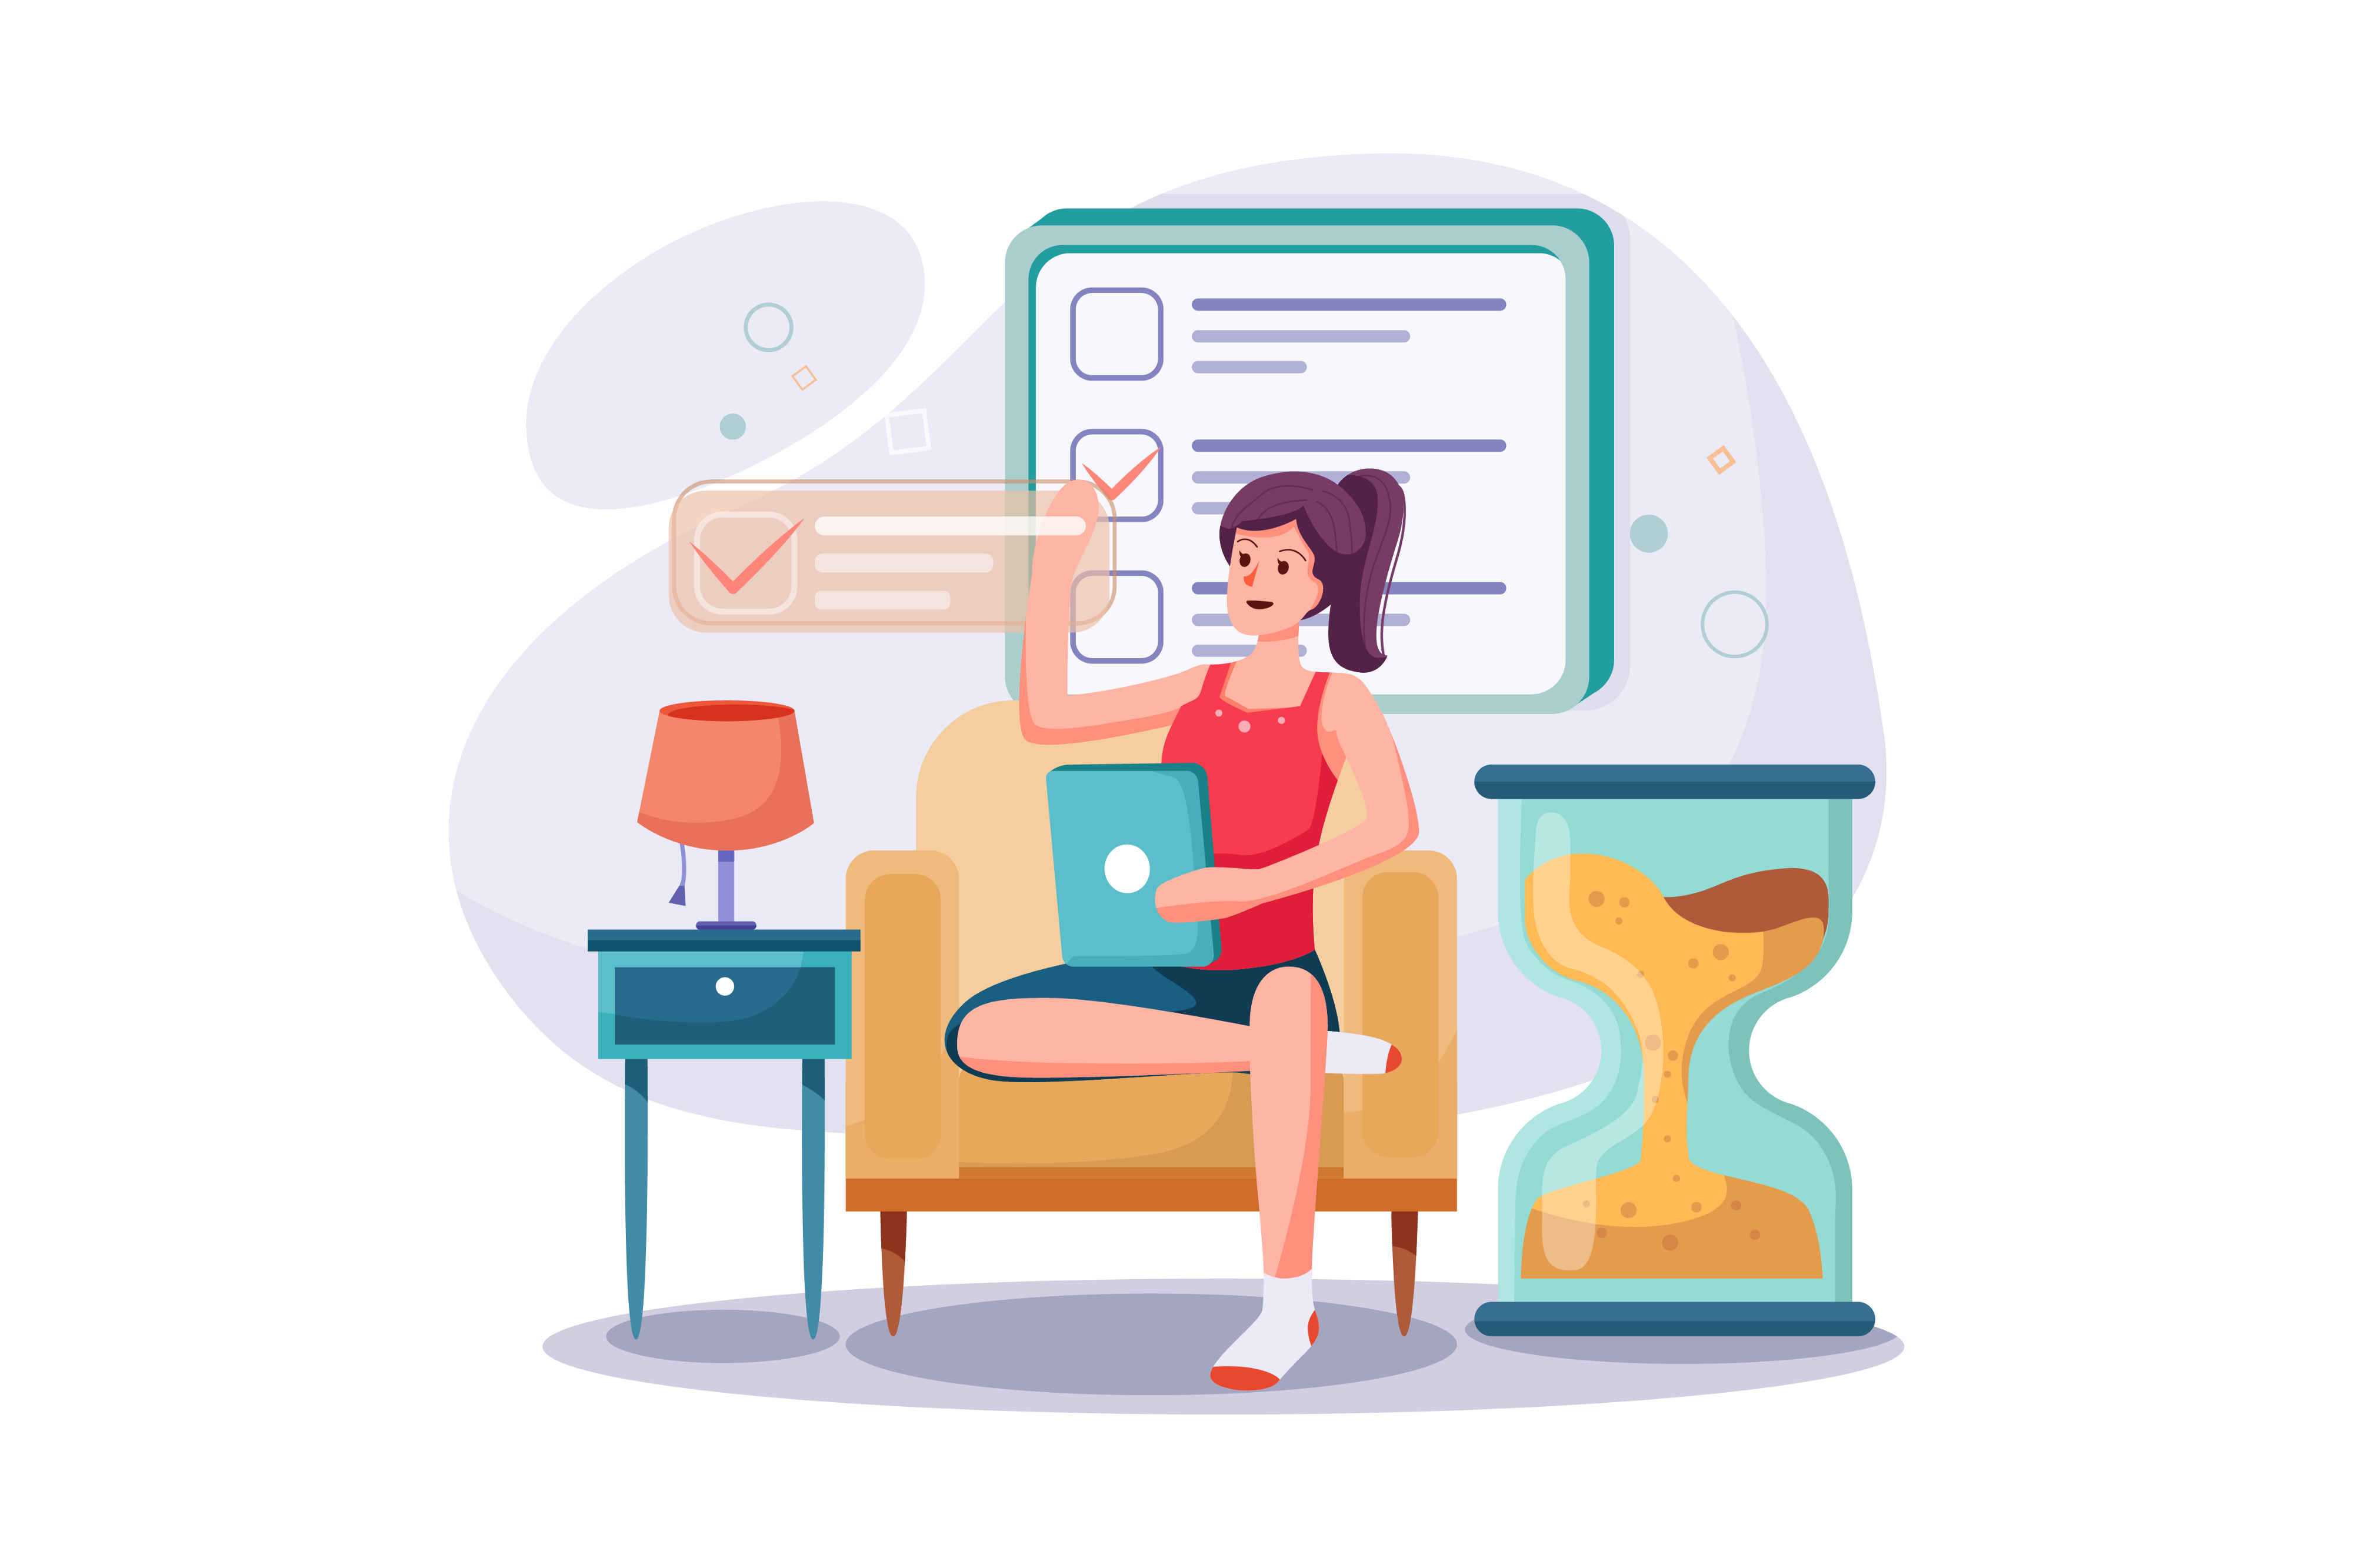 Illustration of a person sitting on a couch and brainstorming a checklist